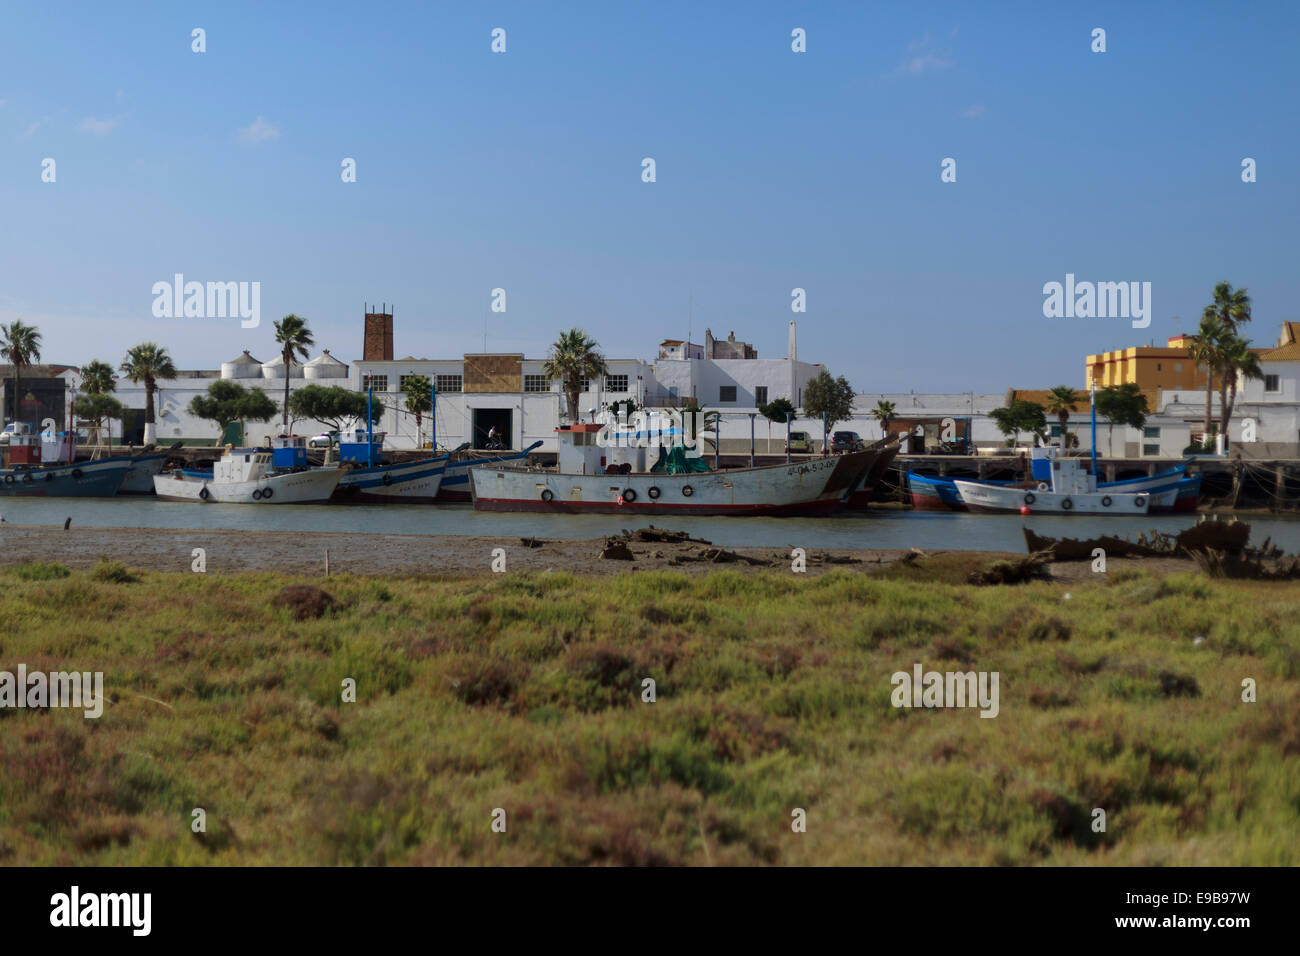 A general view of the Spain Andalusia Barbate old harbor. This photo show the green marshland and boat in the old - Stock Image